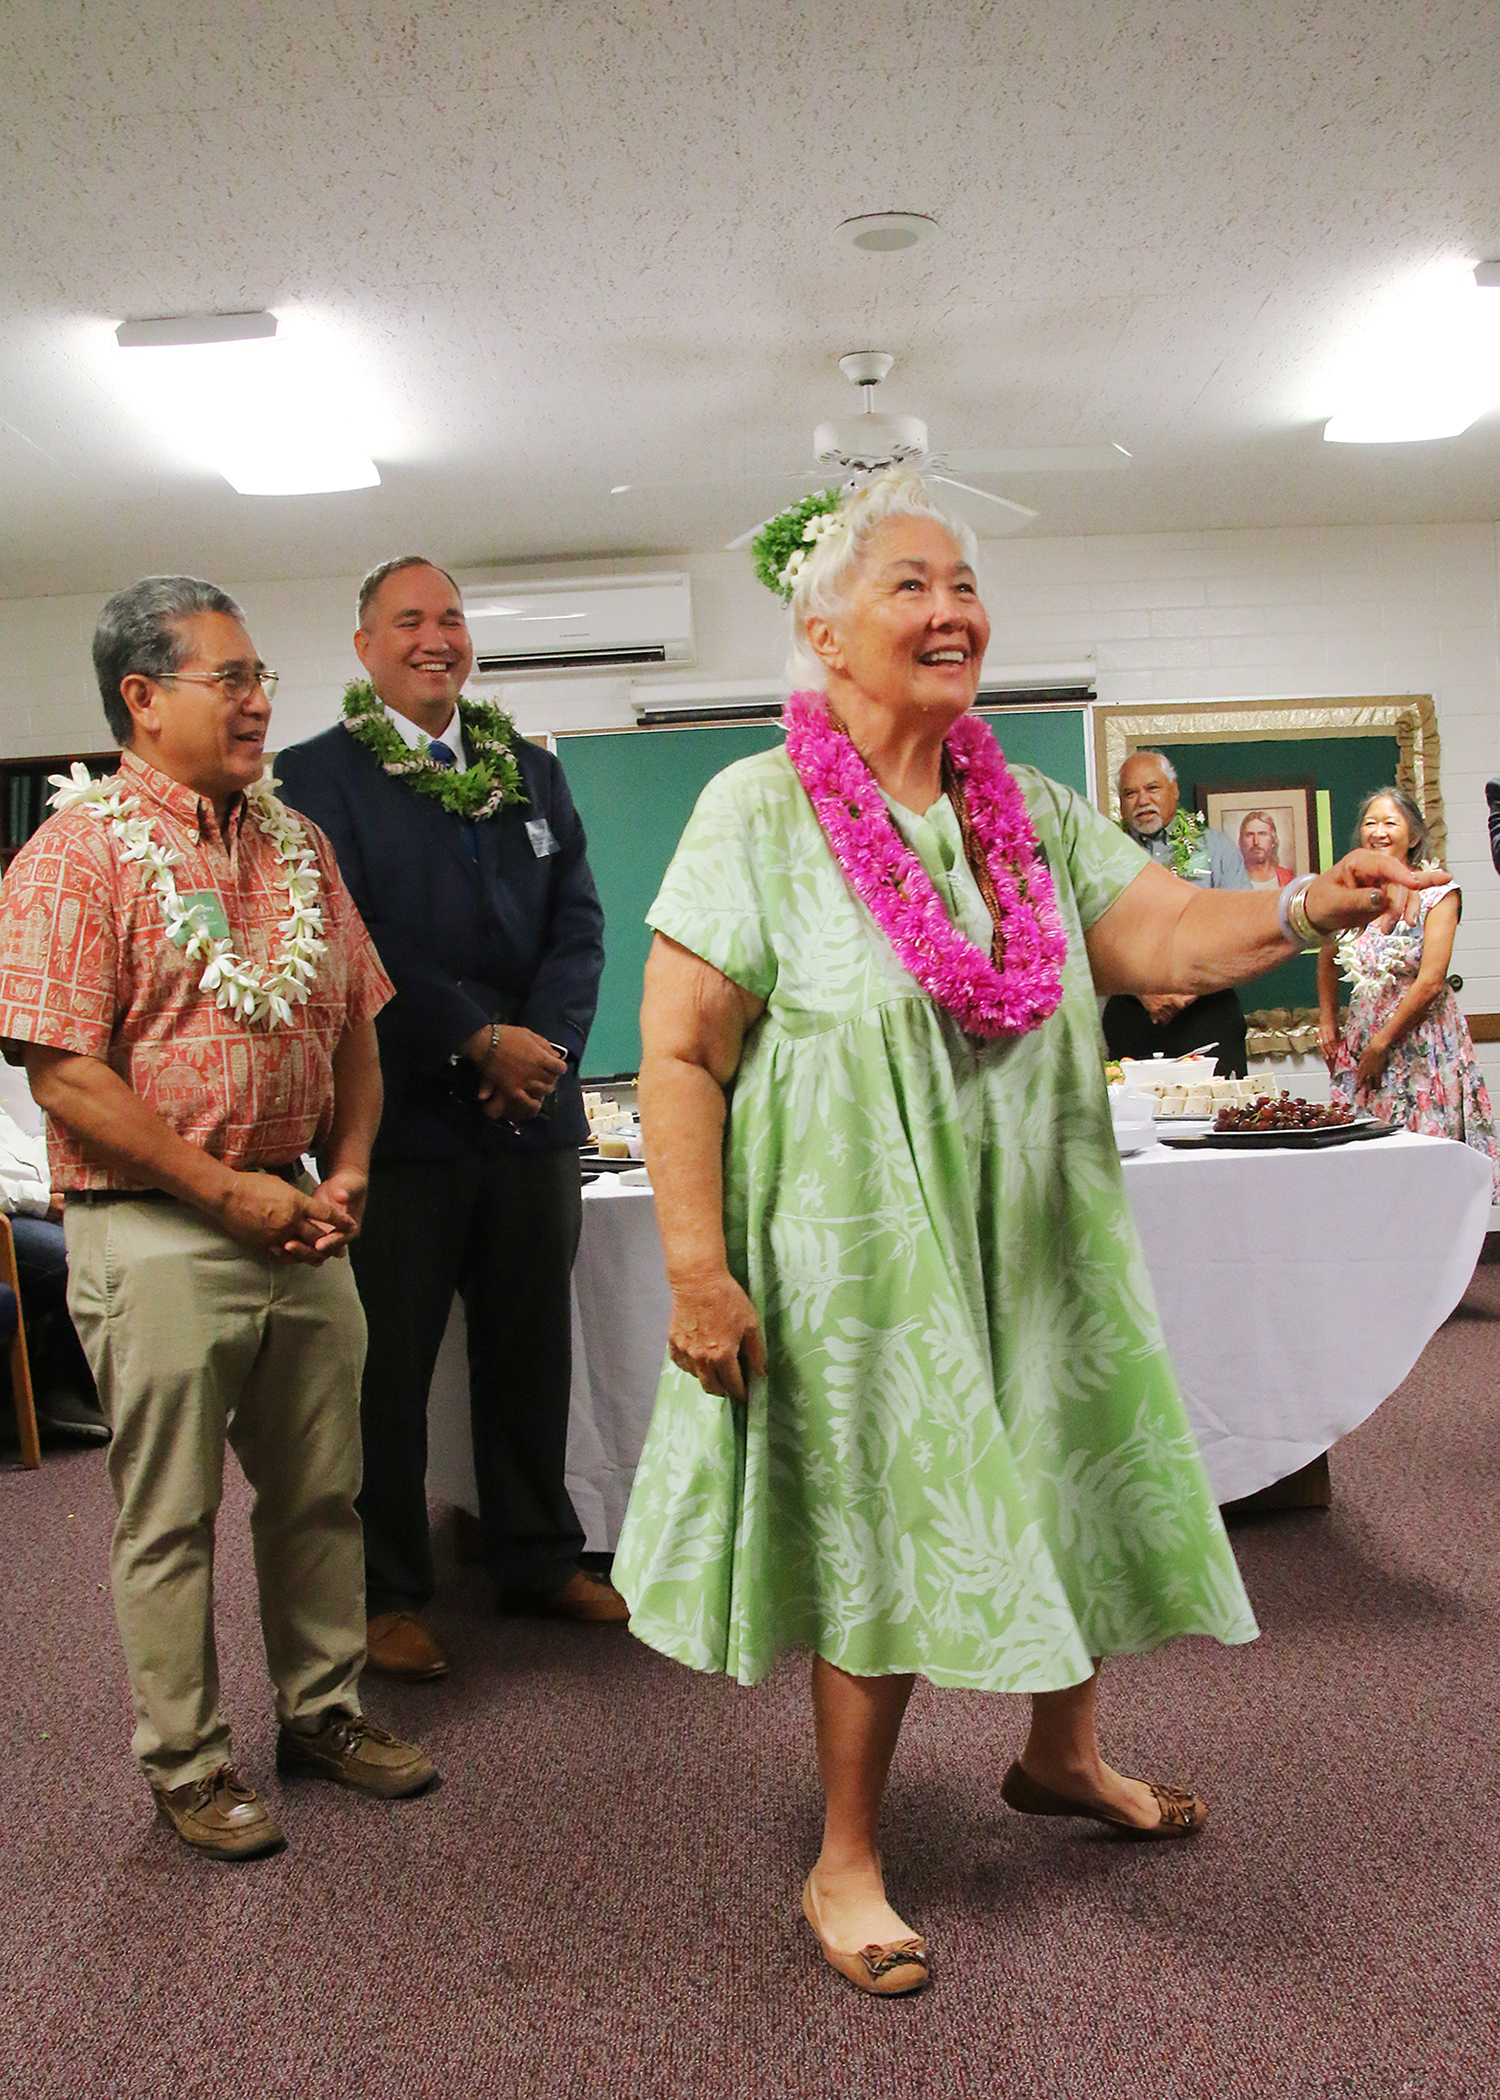 Ulalia Ka'ai Berman — a revered kumu hula (hula master), Hawaii studies teacher in Kona and an active Catholic — dances an impromptu hula for President Nelson and his party during a special reception for community leaders before his May 16, 2019, devotional in the Kona Hawaii Stake center. She is accompanied vocally by the Rev. Danny Akaka Jr., left, son of Hawaii's late U.S. Sen. Daniel Akaka and himself a well-known Hawaiian entertainer, historian and storyteller; and Lono Ikuwa, second from left, a Latter-day Saint.